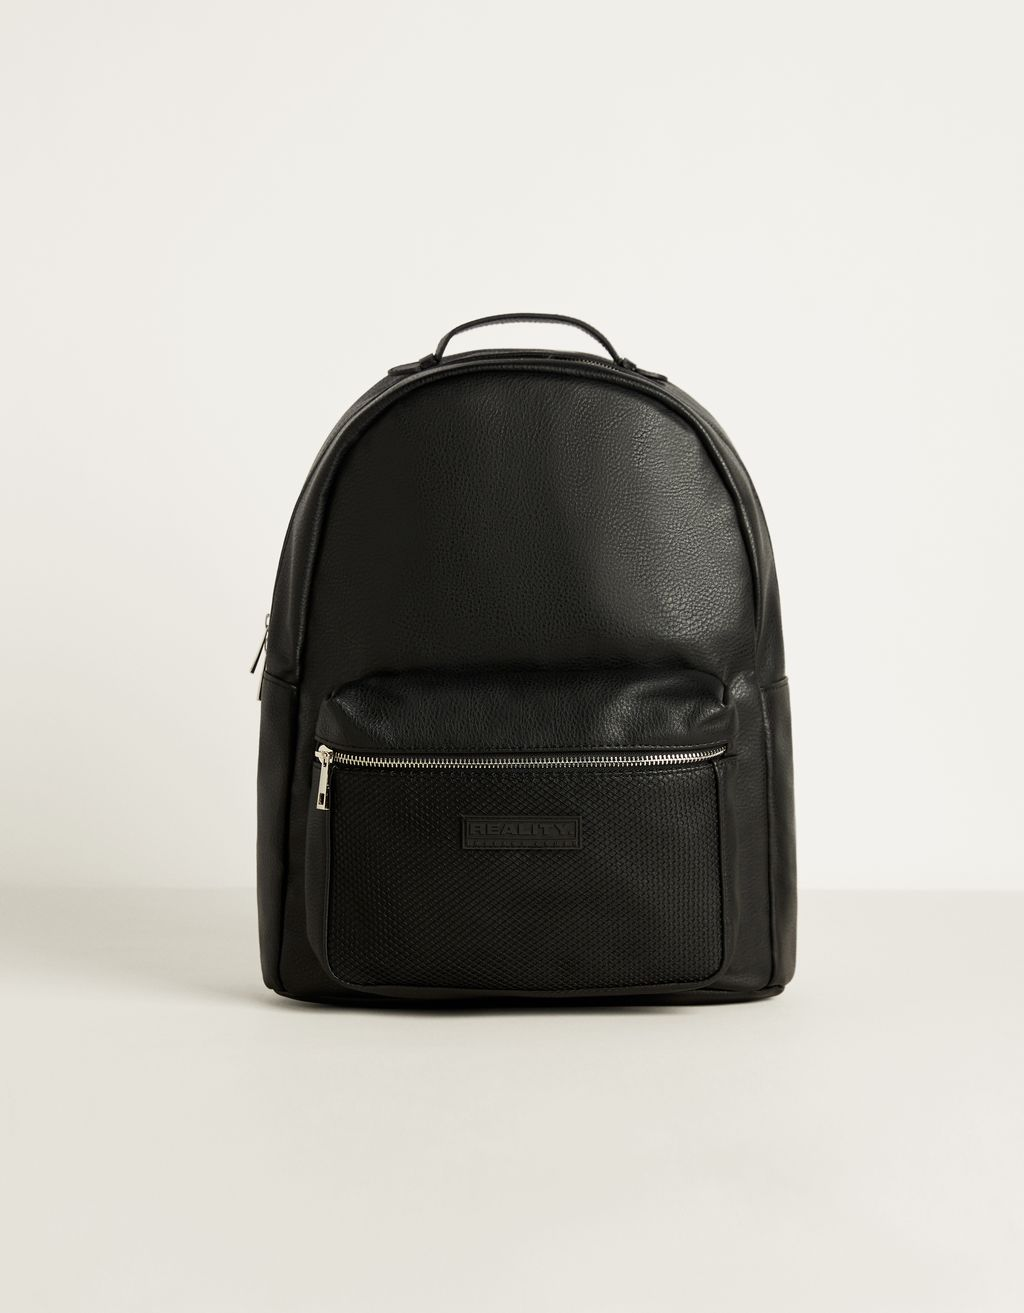 Faux leather backpack with mesh